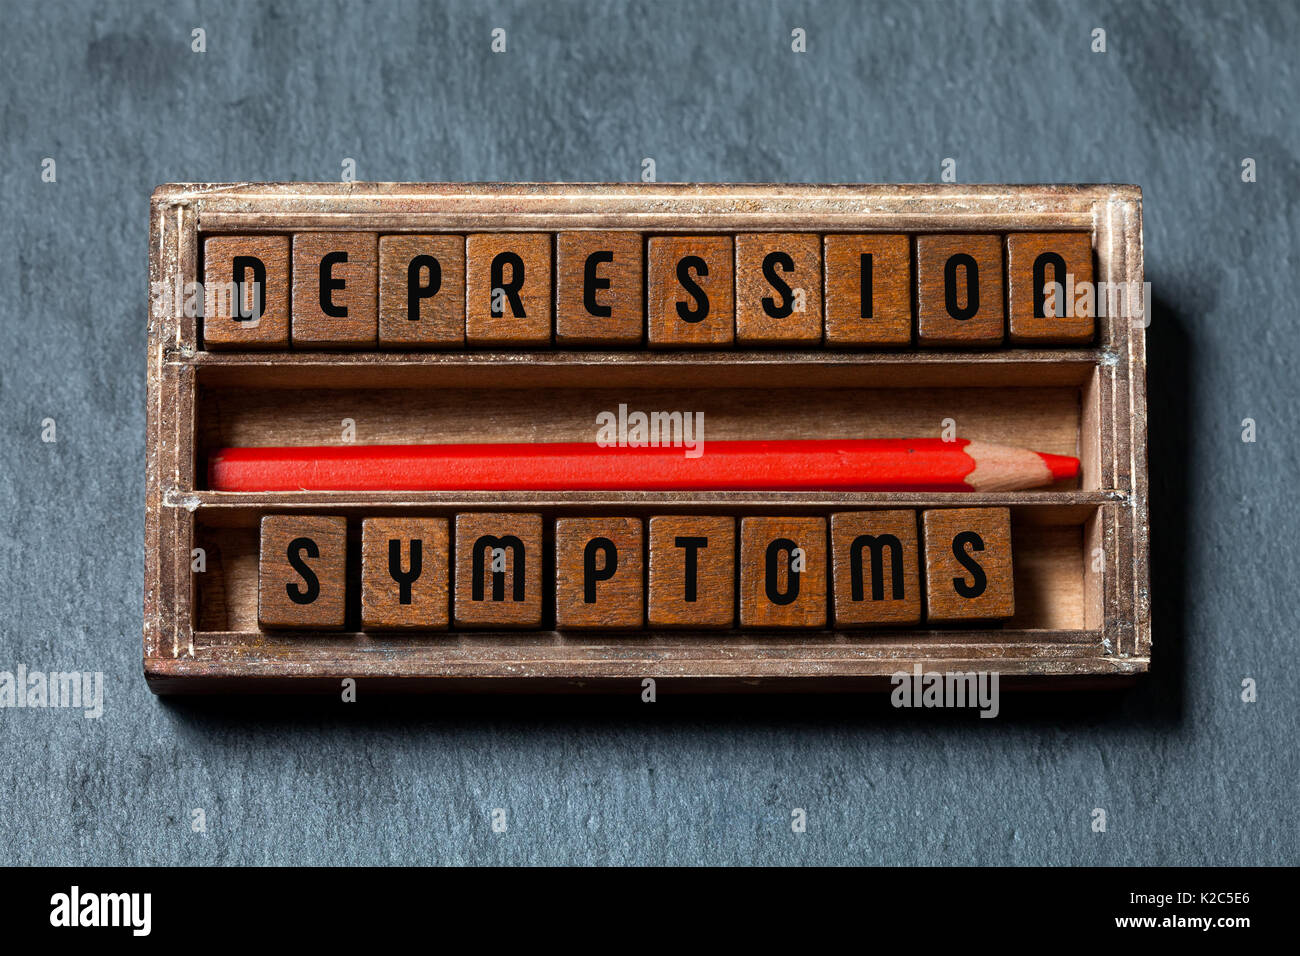 Depression symptoms conceptual image. Vintage box with textured wooden blocks letters text, red pencil. Gray stone background, macro view, soft focus - Stock Image